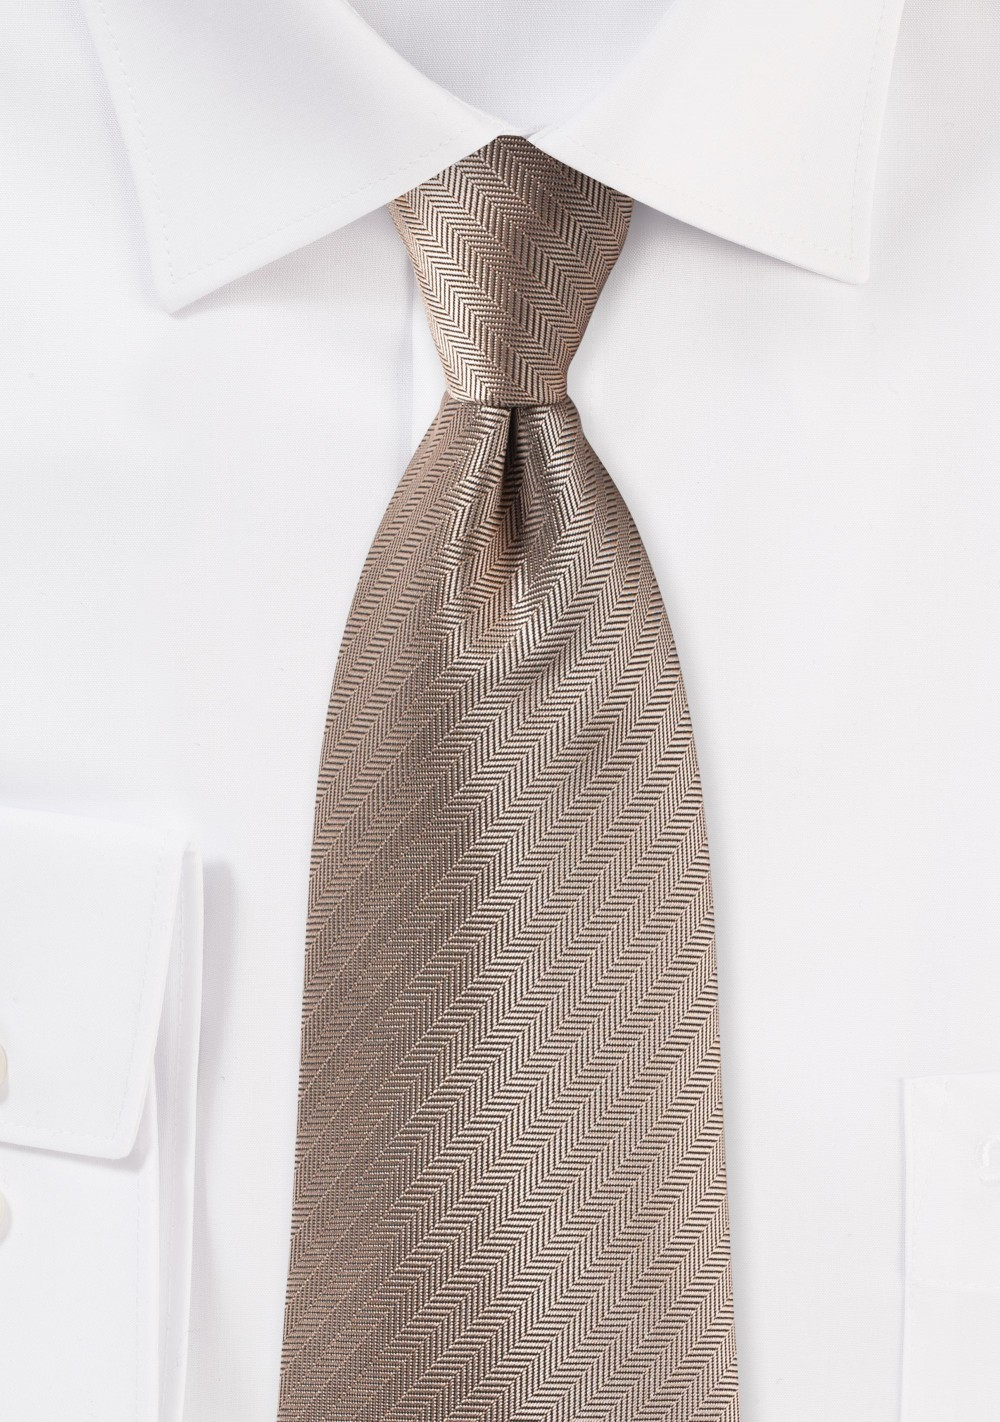 Herringbone Tie in Bronze Gold